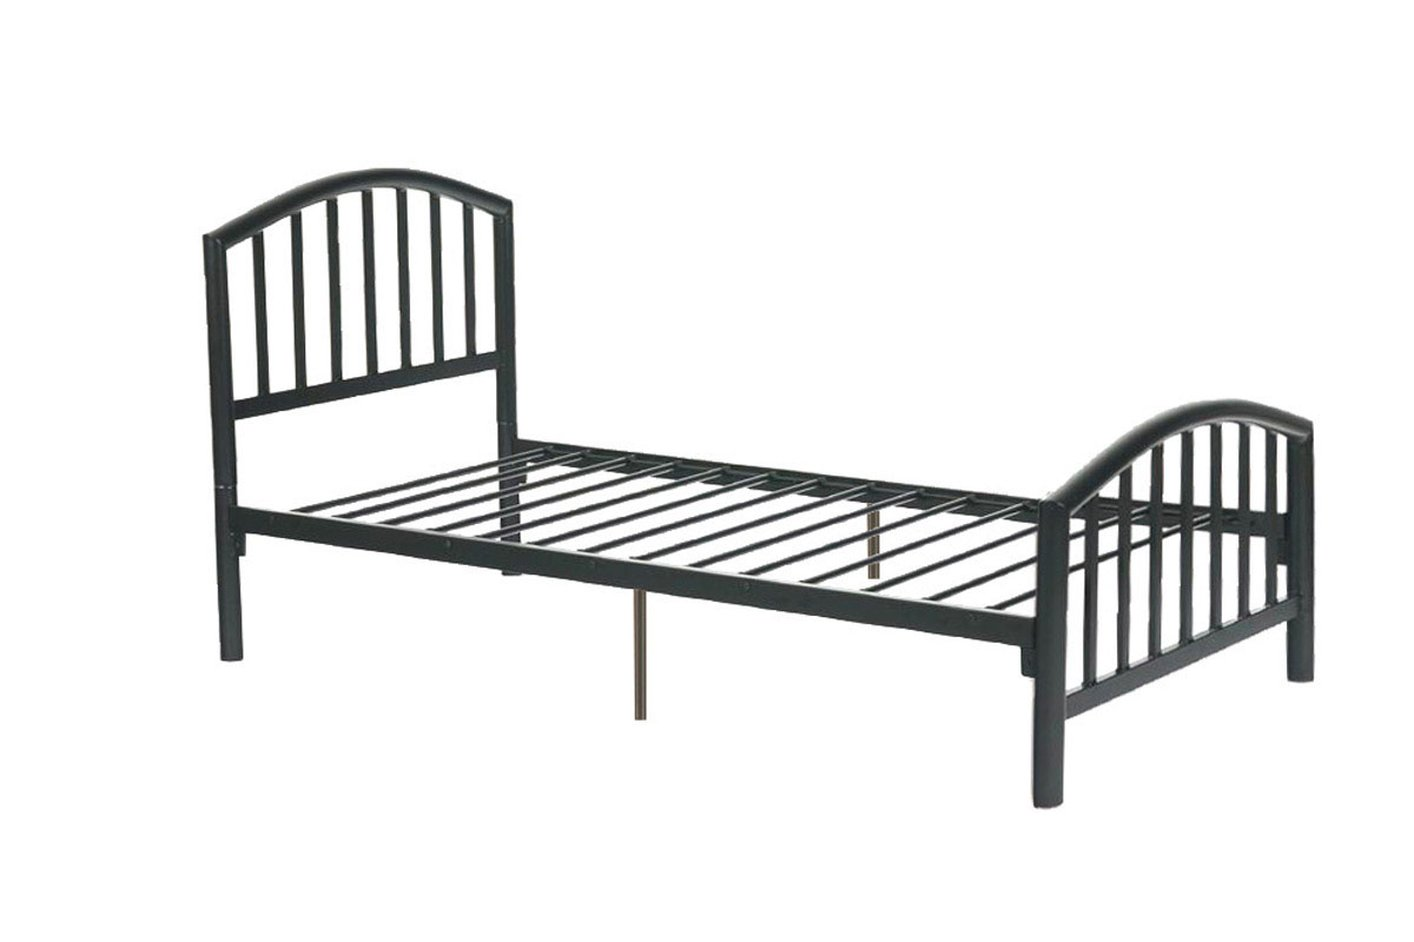 metal twin size bed - Seatle.davidjoel.co